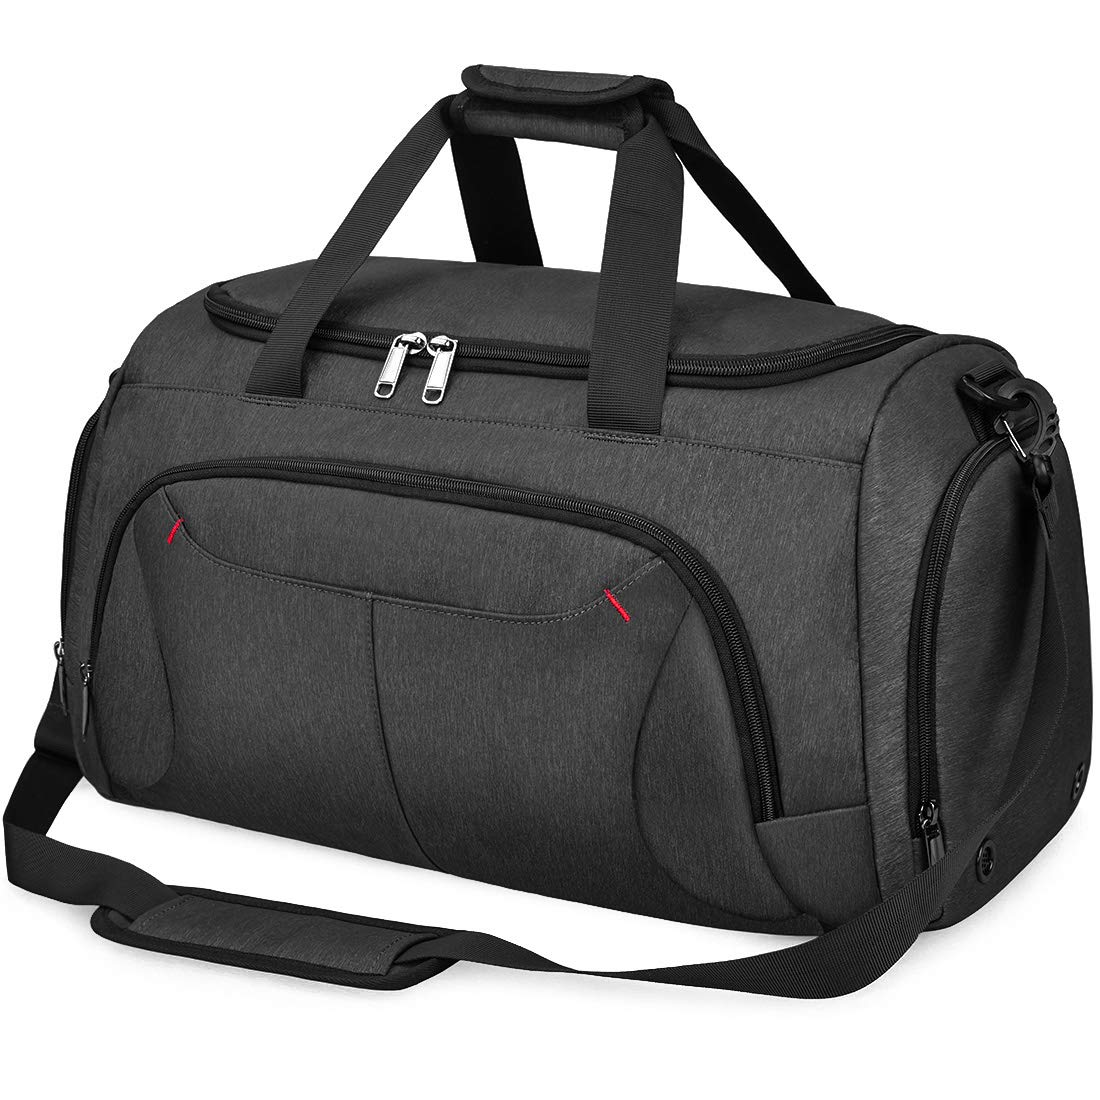 Gym Duffle Bag Waterproof Large Sports Bags Travel Duffel Bags with Shoes Compartment Weekender Overnight Bag Men Women 40L Black by NUBILY